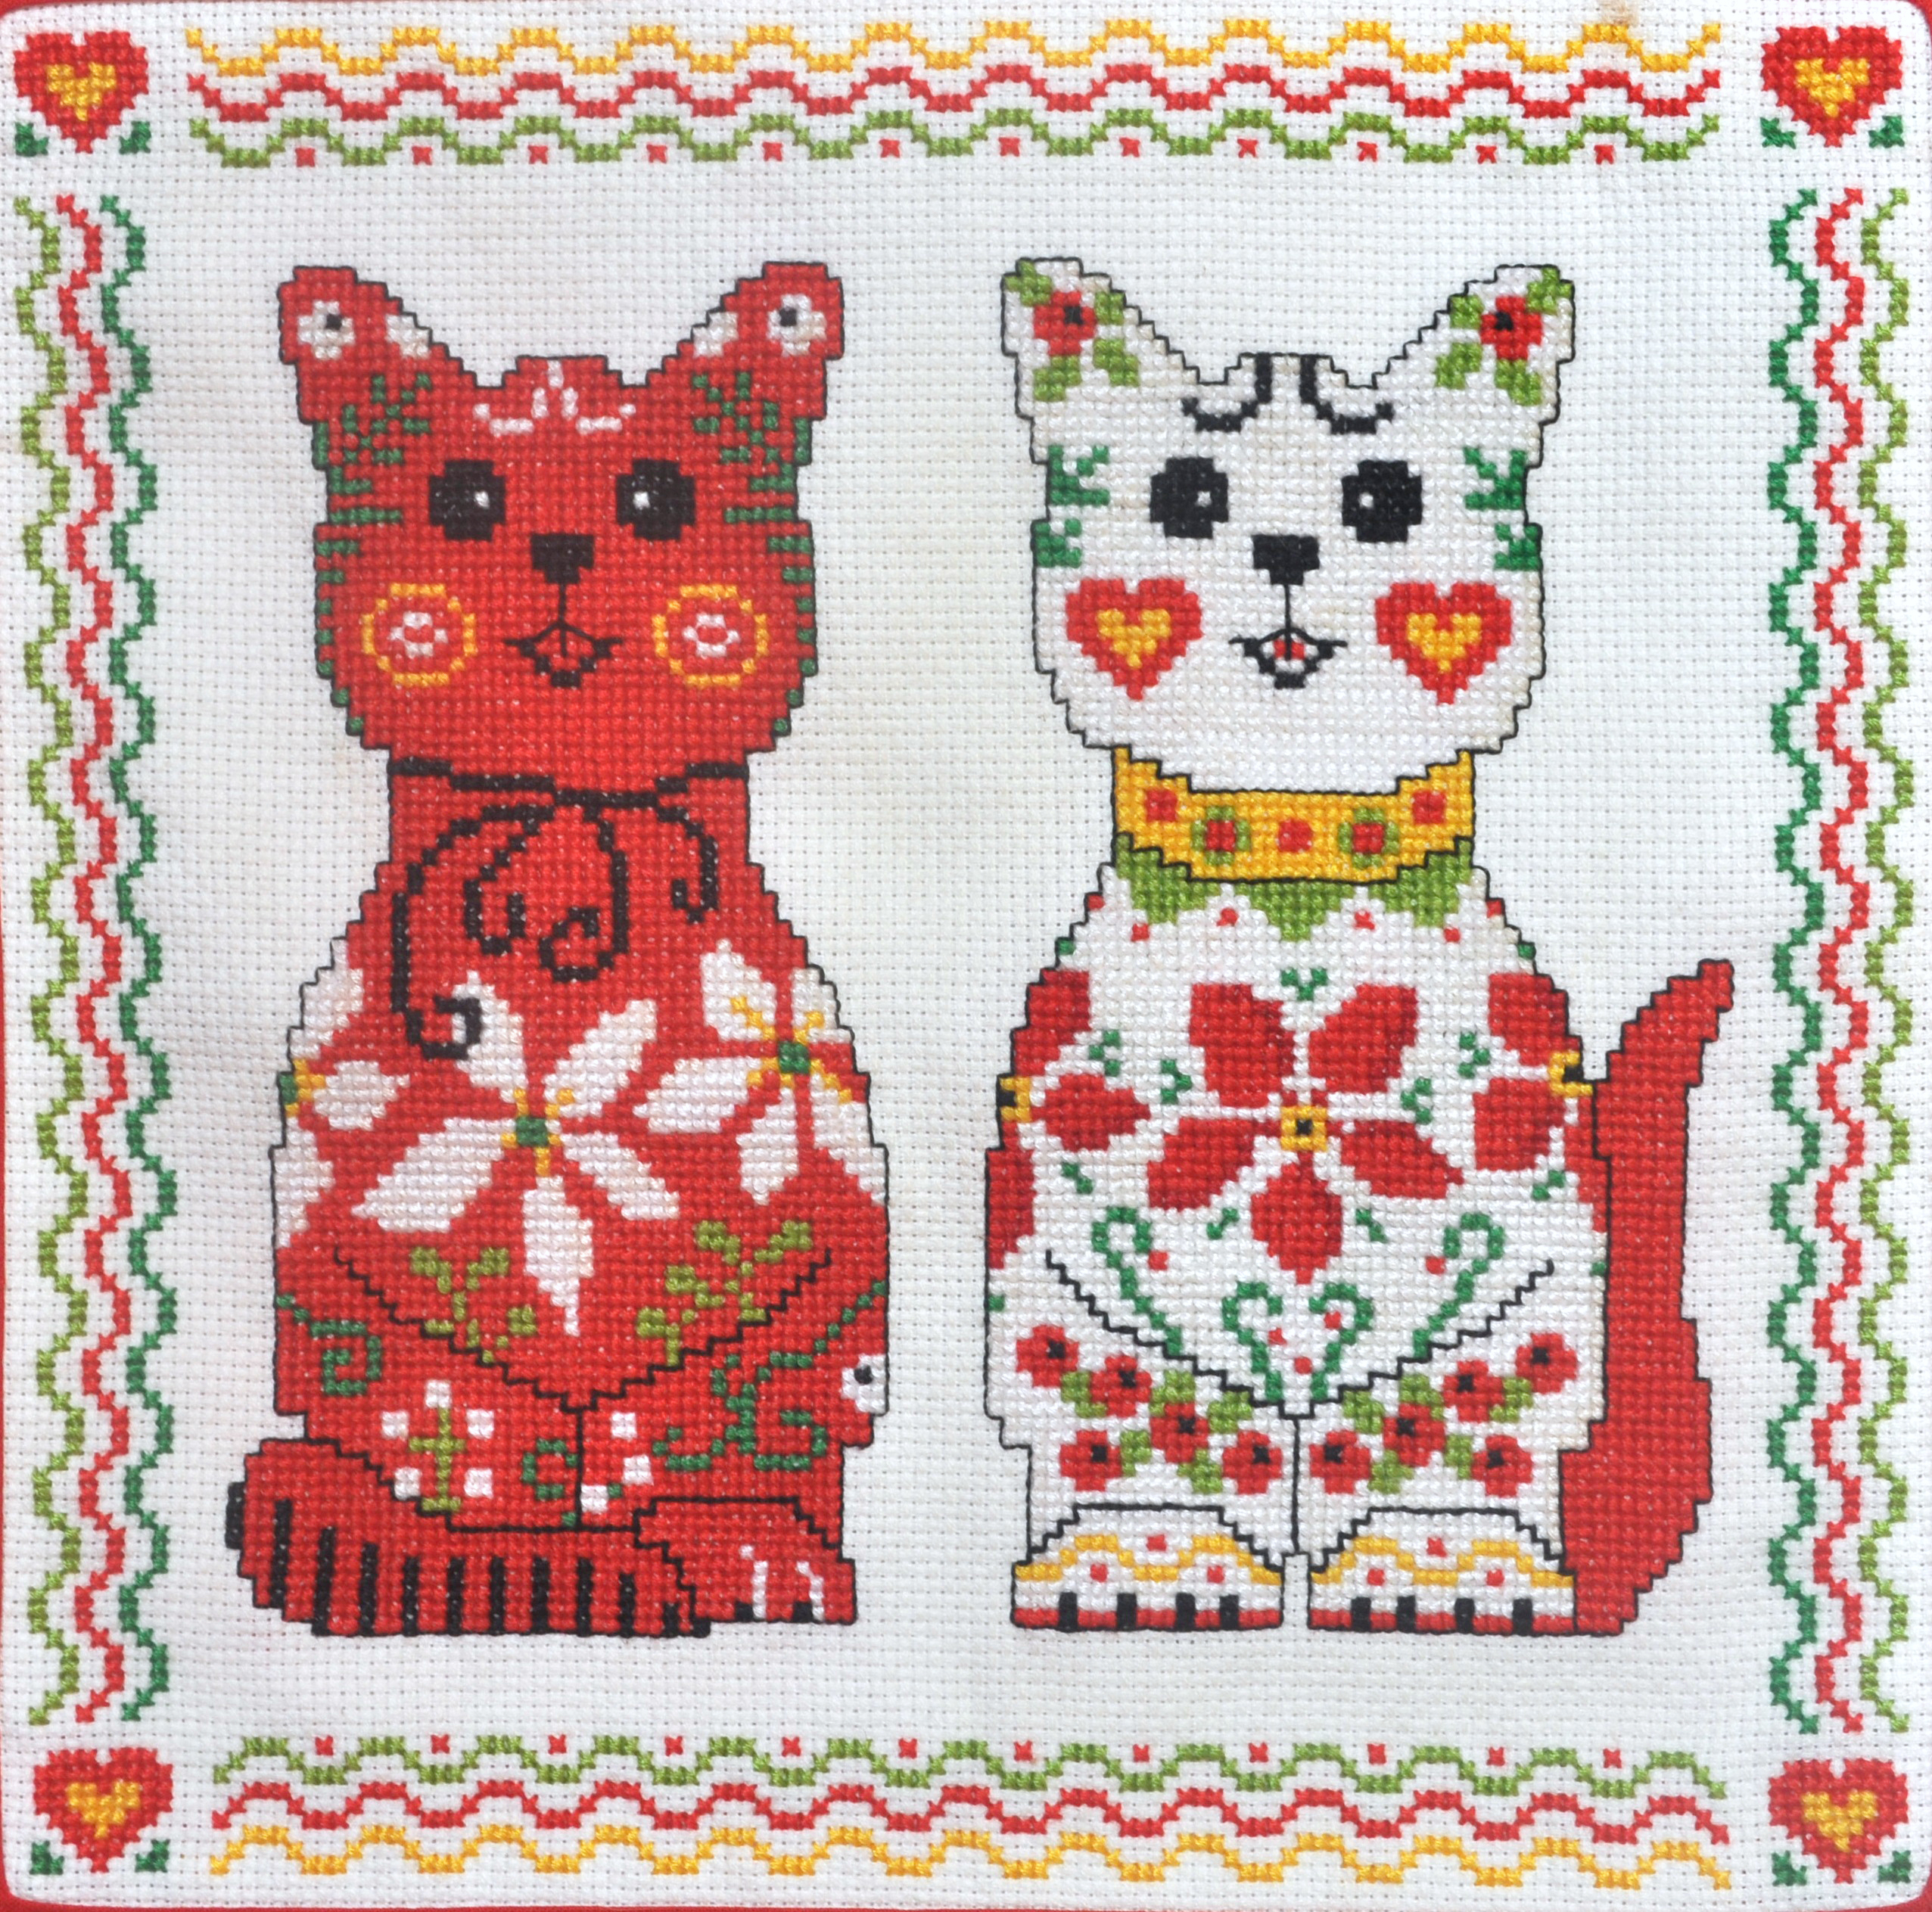 Two elegant cats, counted cross stitch chart, designed by Iveta Hlavinova